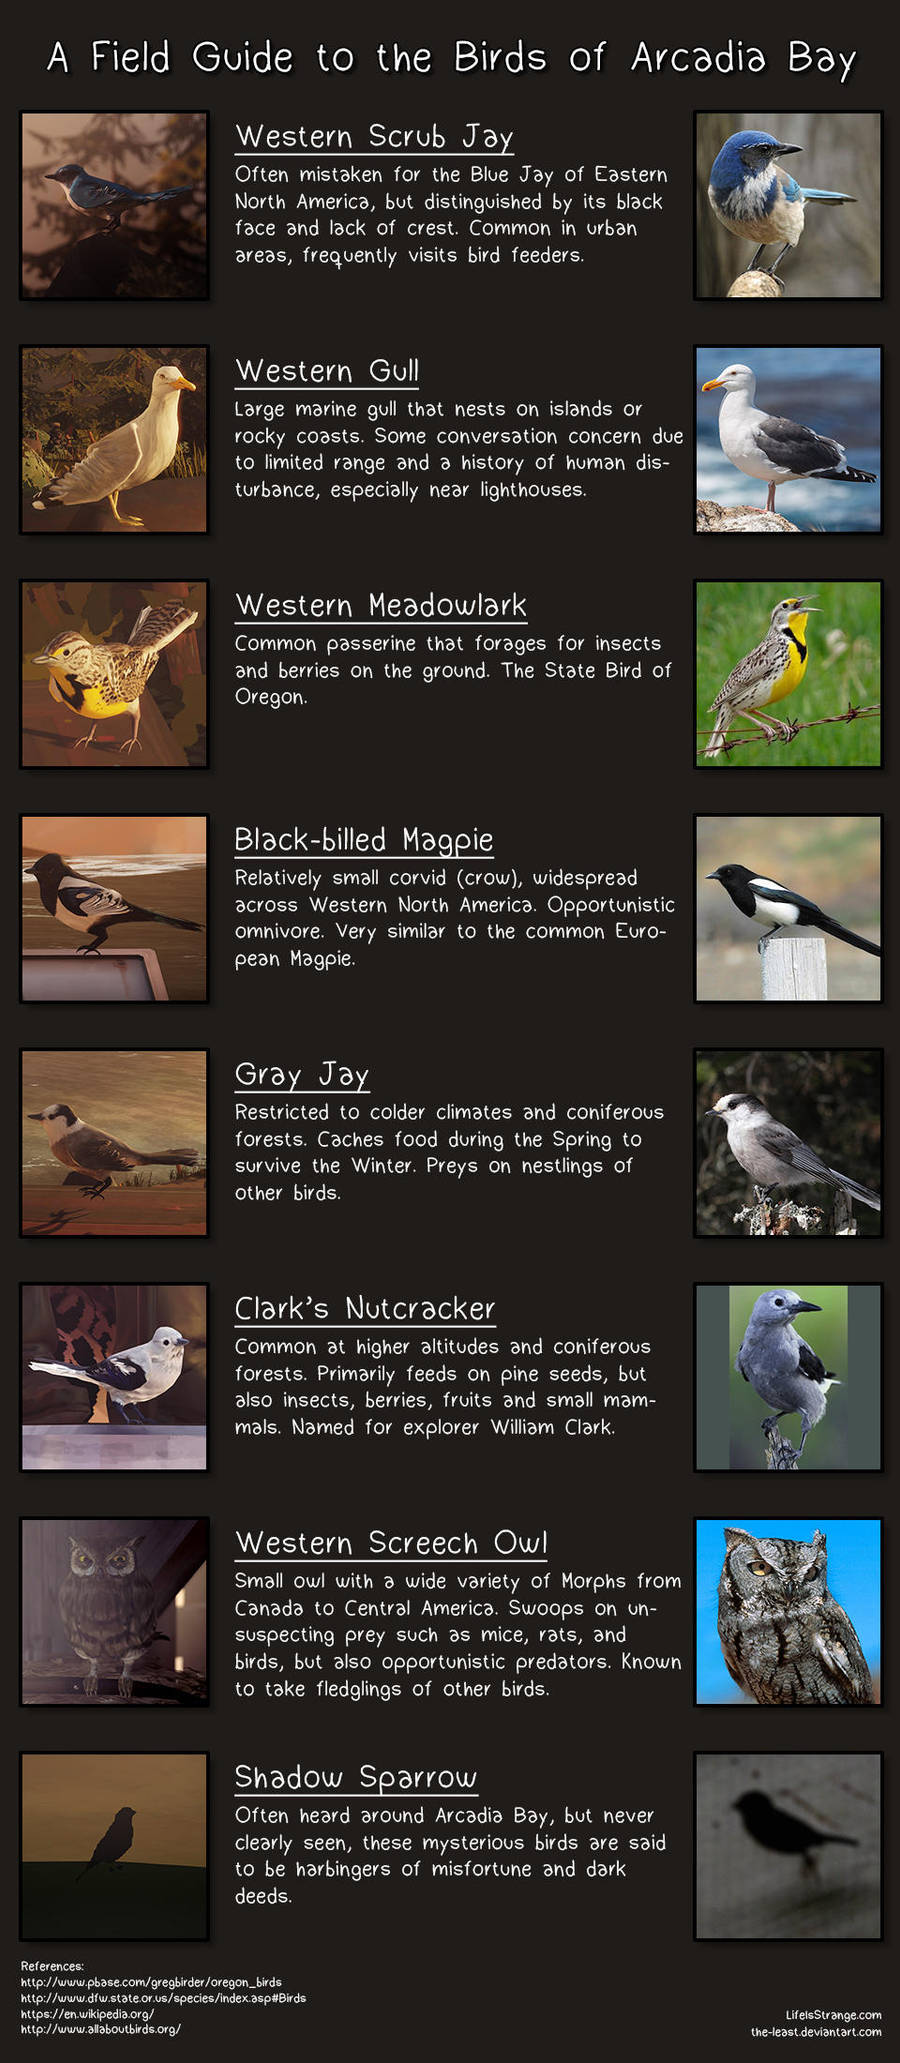 Field Guide to the Birds of Arcadia Bay by the-least